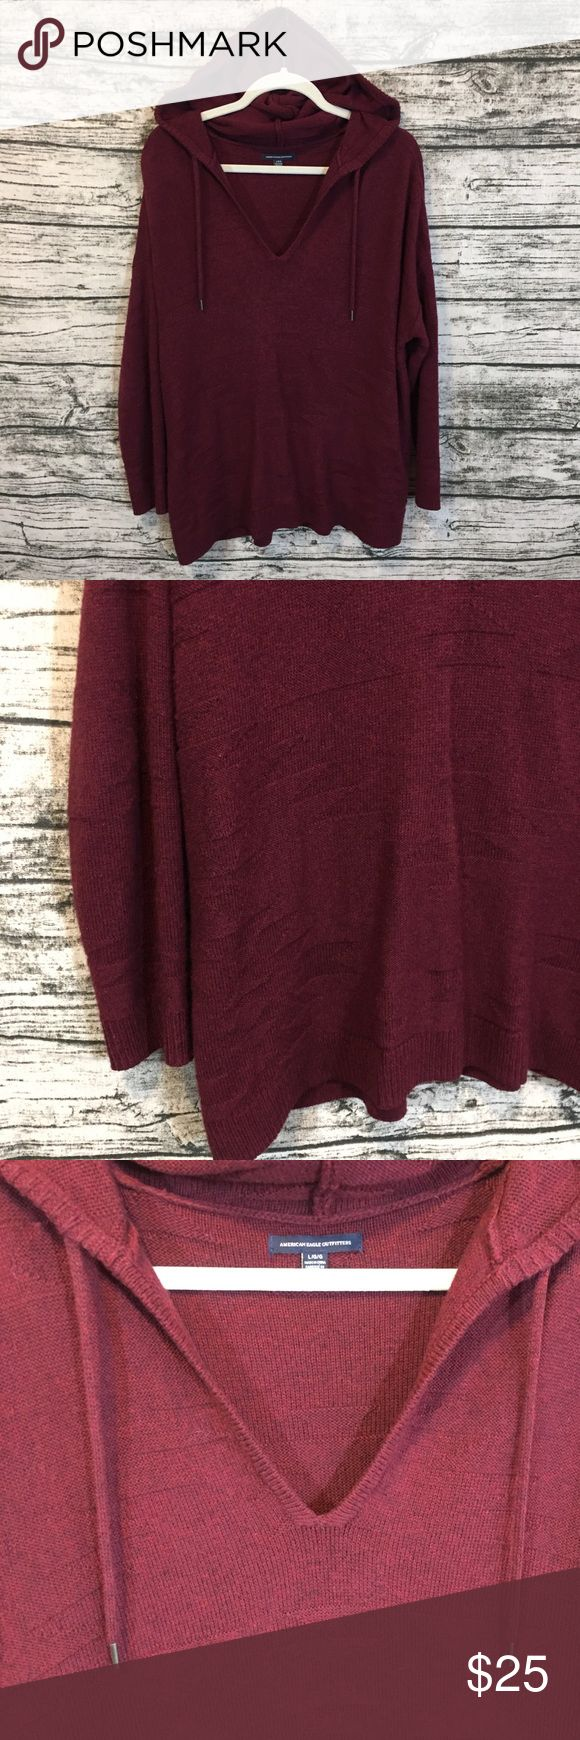 AEO burgundy jegging v-neck sweater hoodie L WORN ONCE ✨ Super soft and comfy 💕 No flaws, no trades, discount on bundles 🛍 American Eagle Outfitters Sweaters V-Necks #americaneagleoutfitters